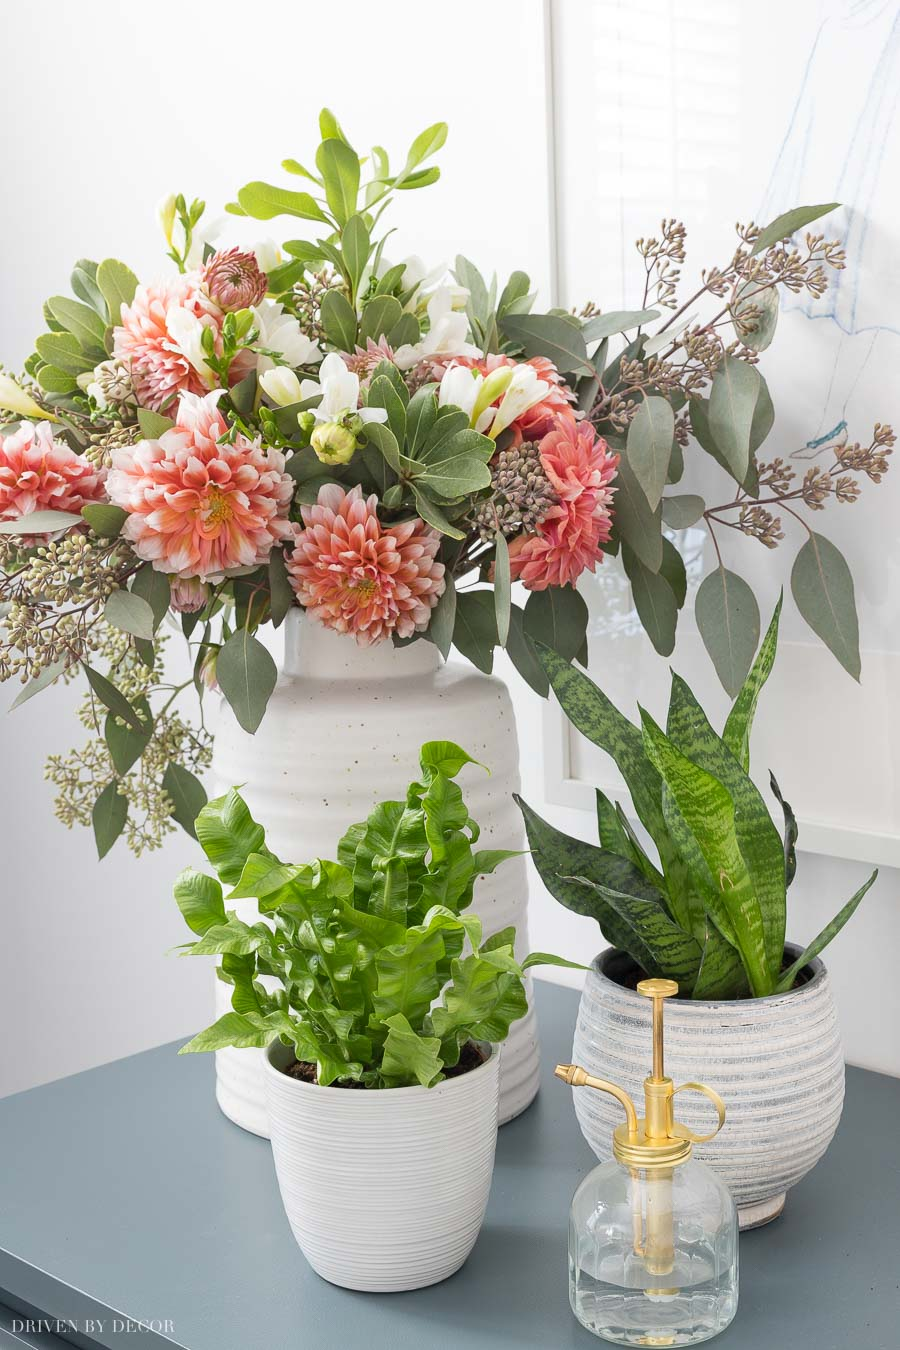 Gorgeous textured white planters and vases!